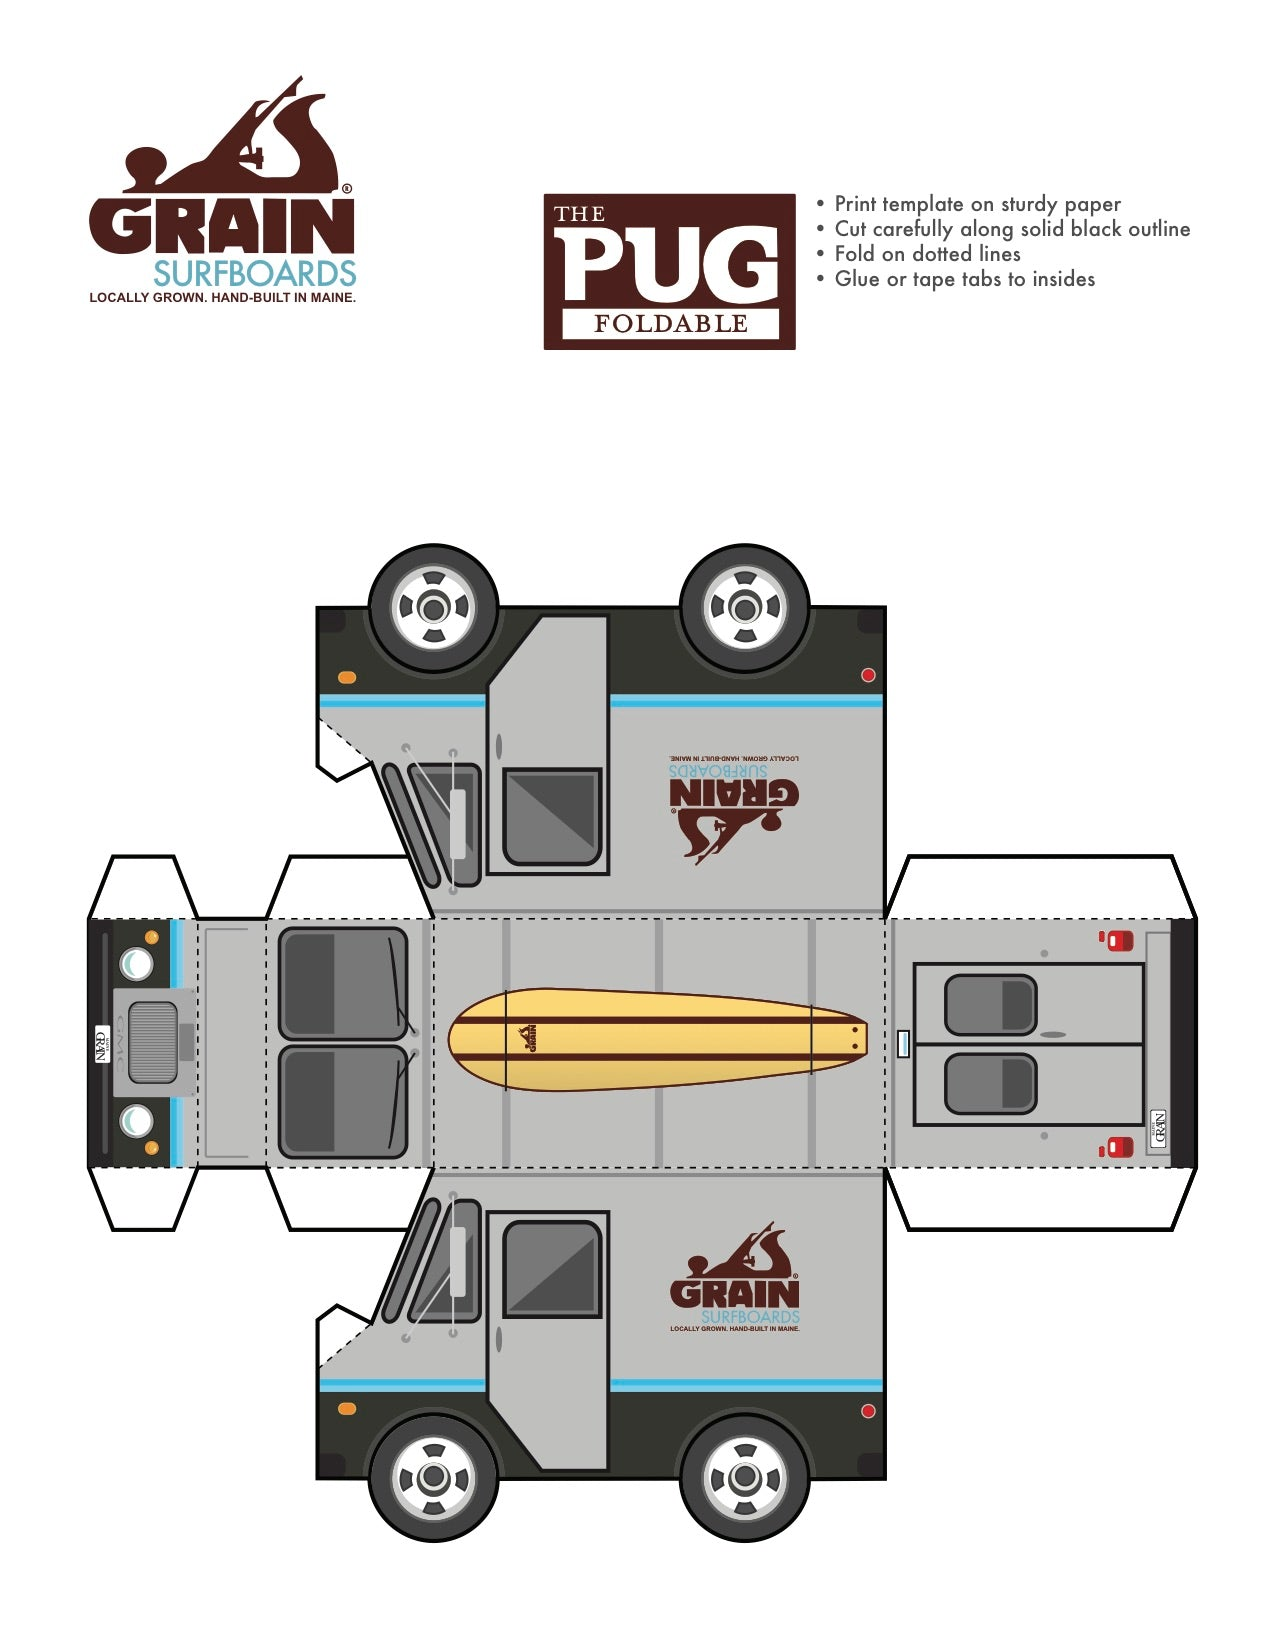 Free Download- The Pug Foldable